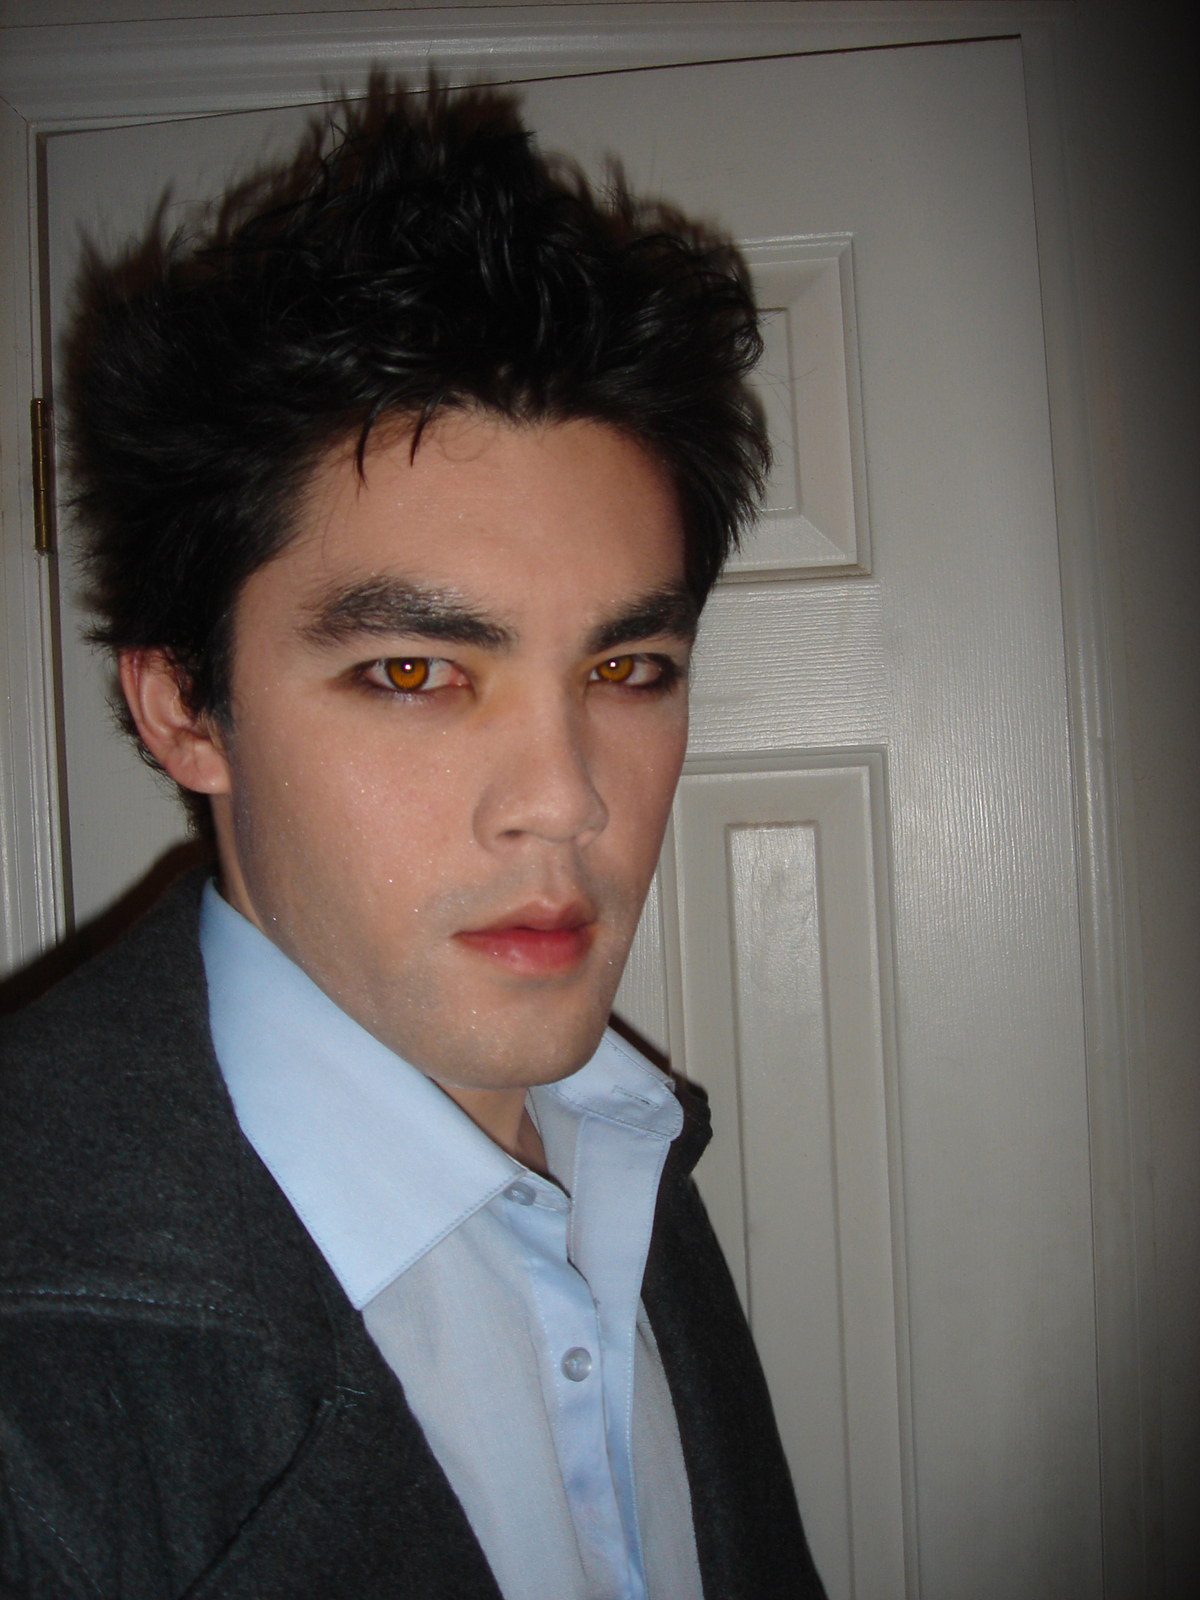 Edward Cullen Cosplay By Marqleon On Deviantart